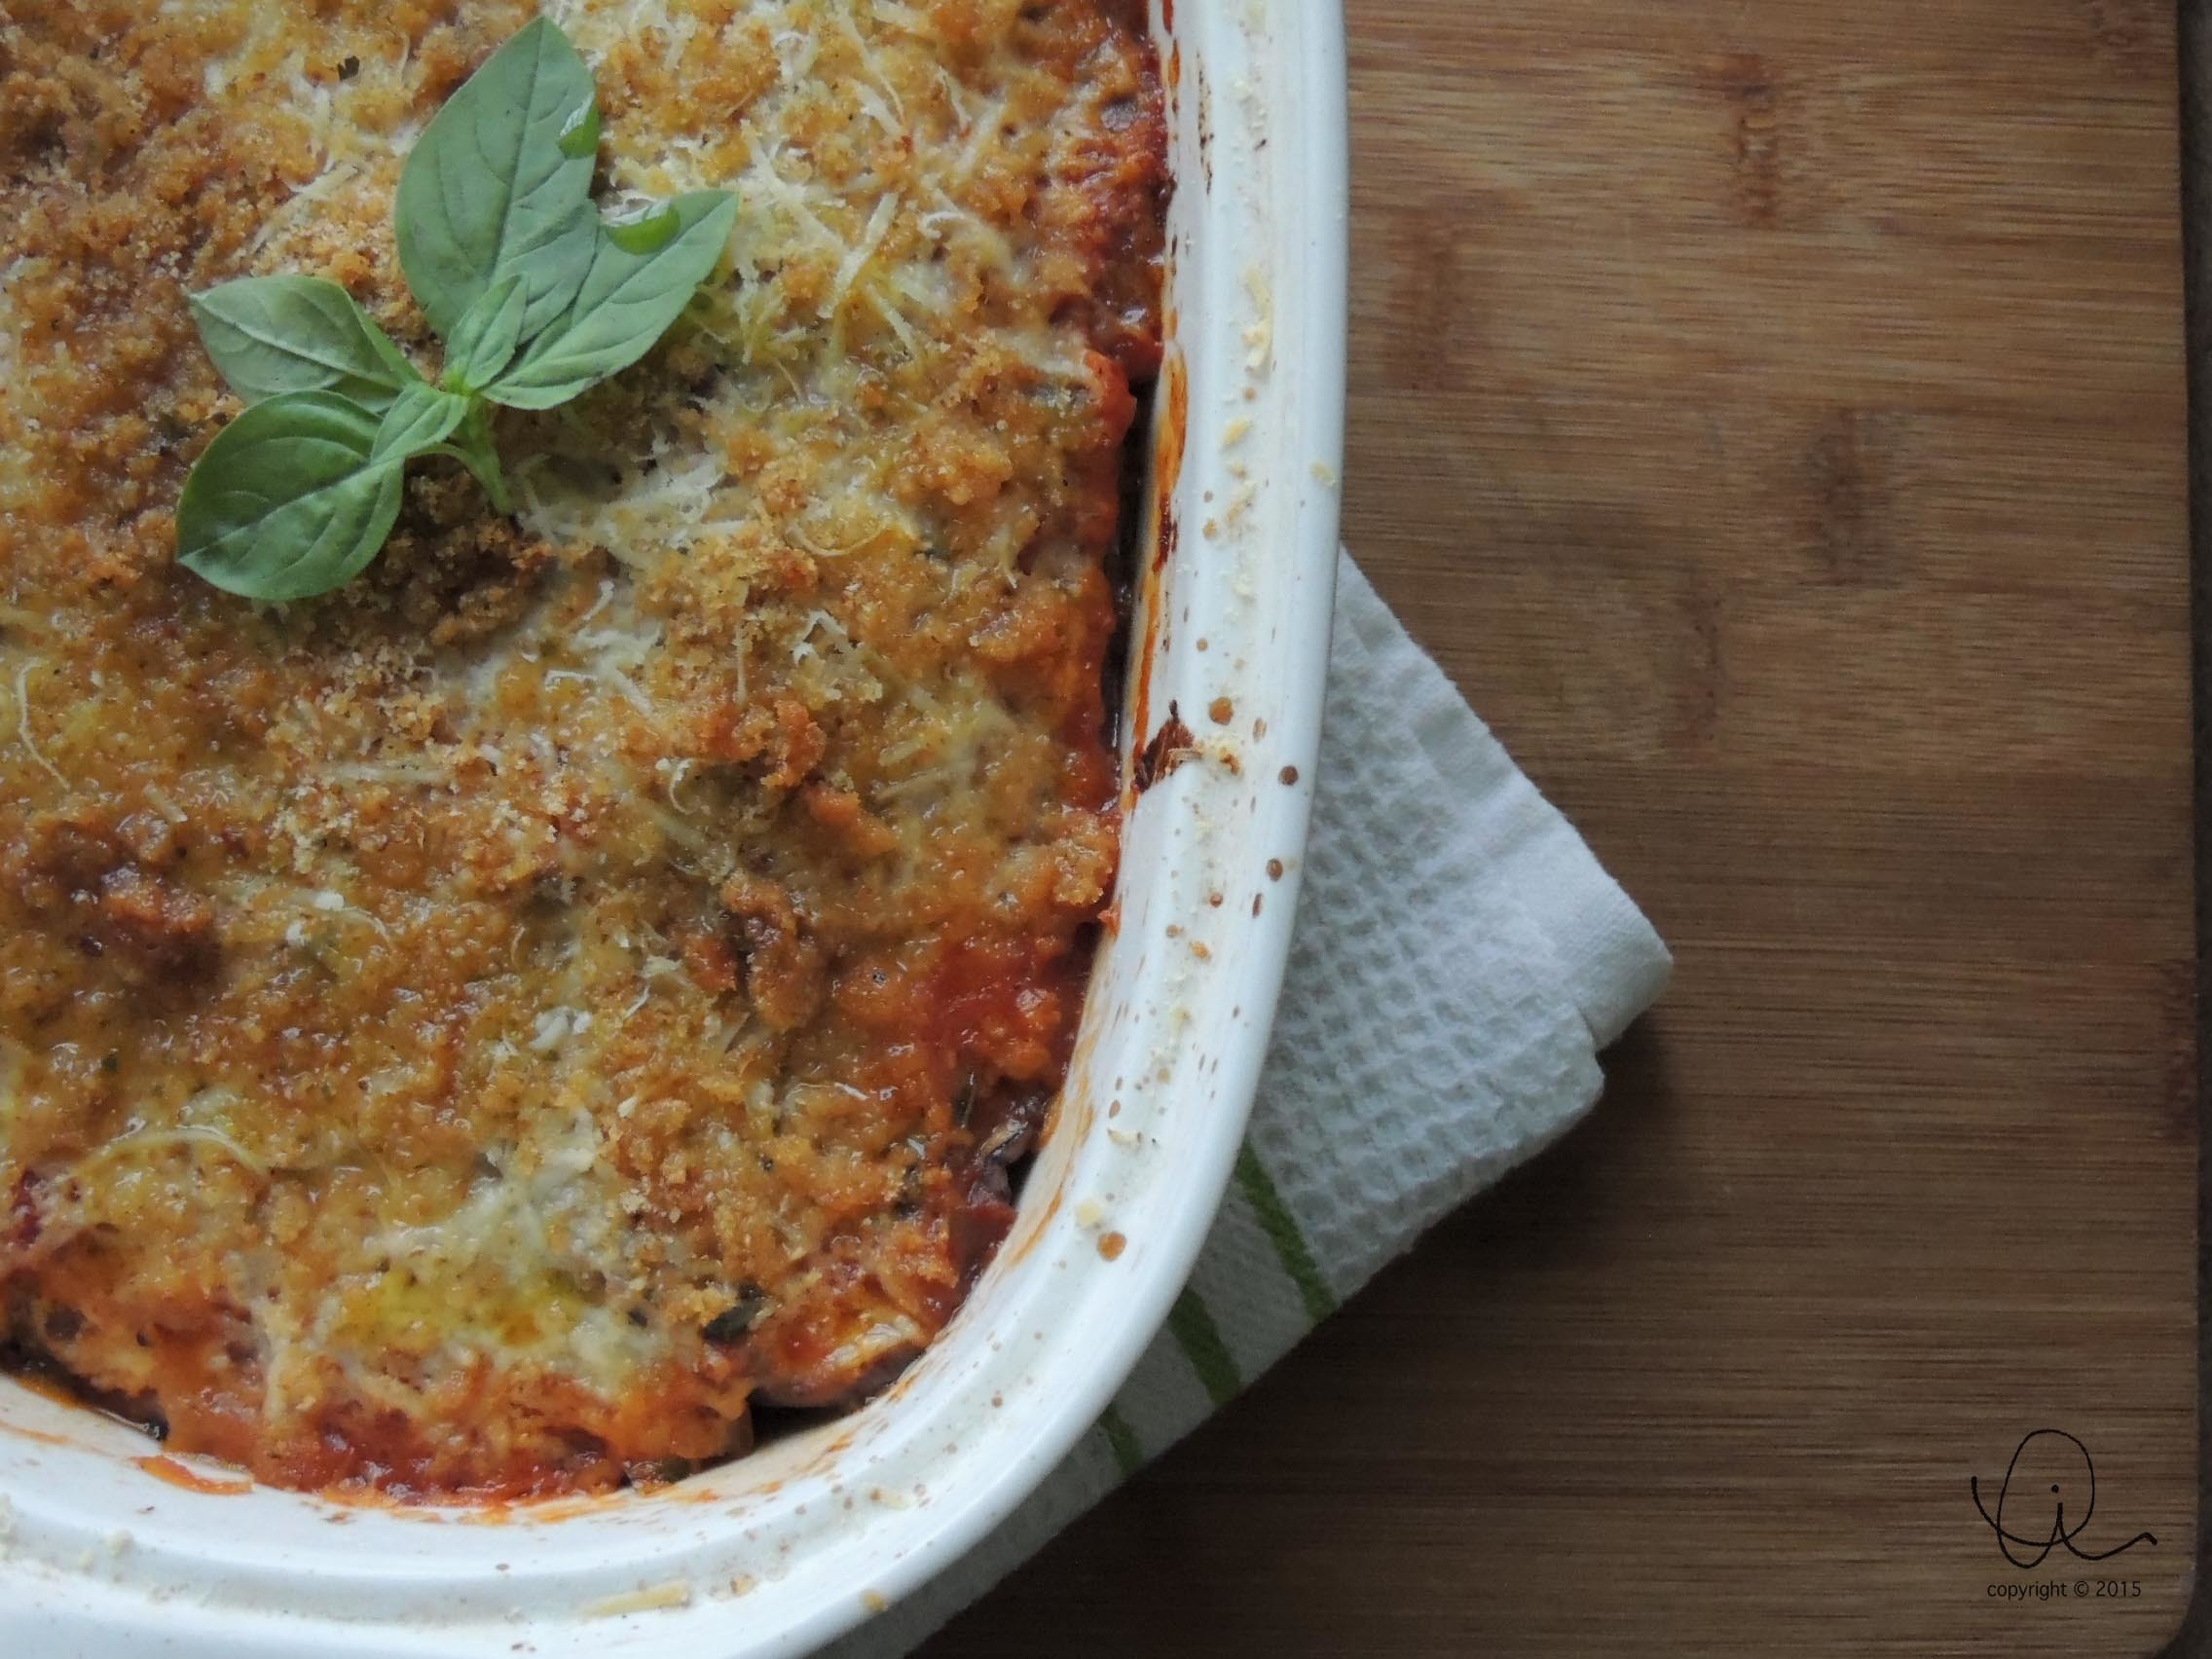 Want an easy meal in support of Meat Free Monday? Try melanzane alla parmigiana